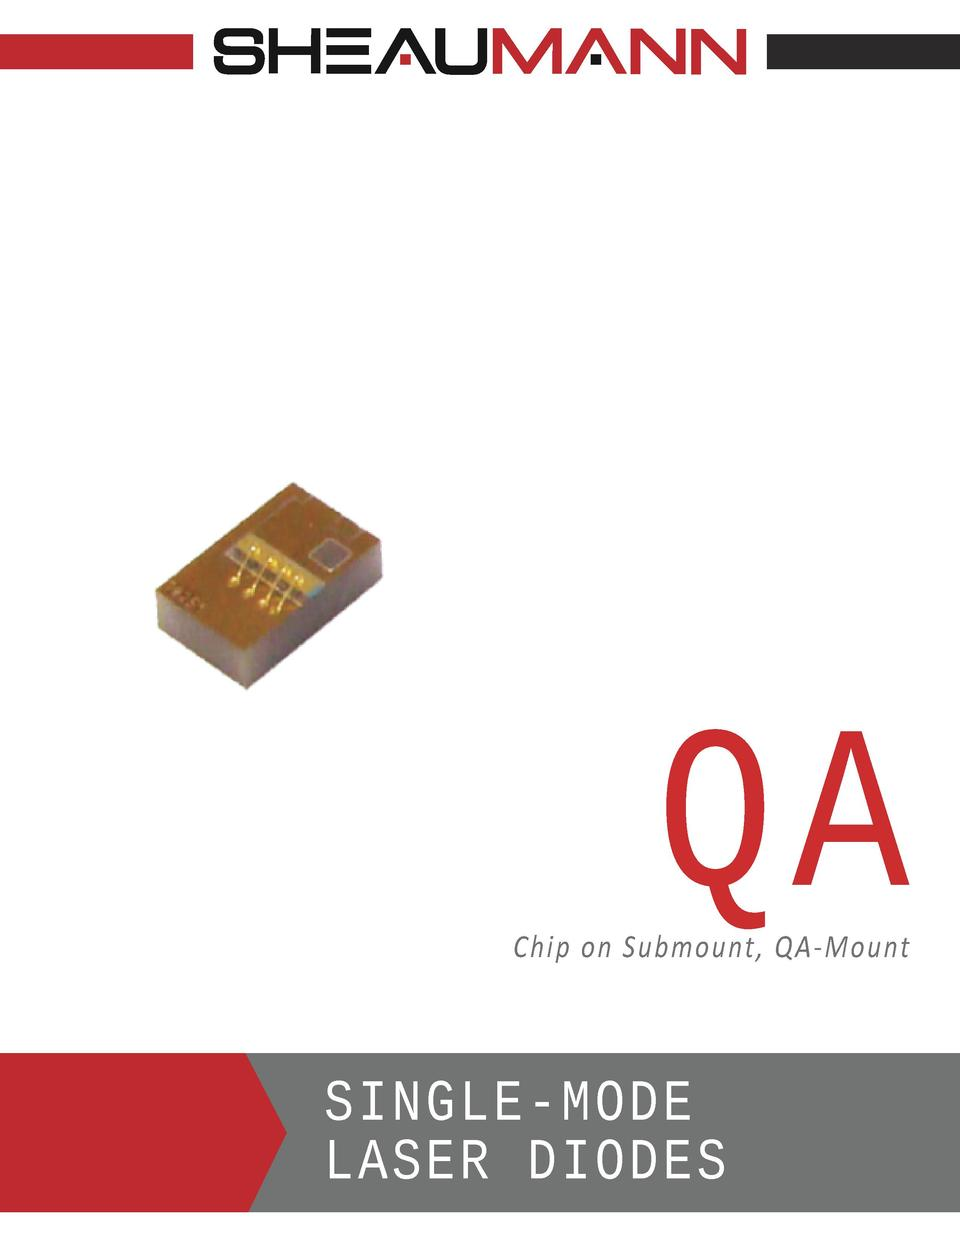 QA  Chip on Submount, QA-Mount  SINGLE-MODE LASER DIODES